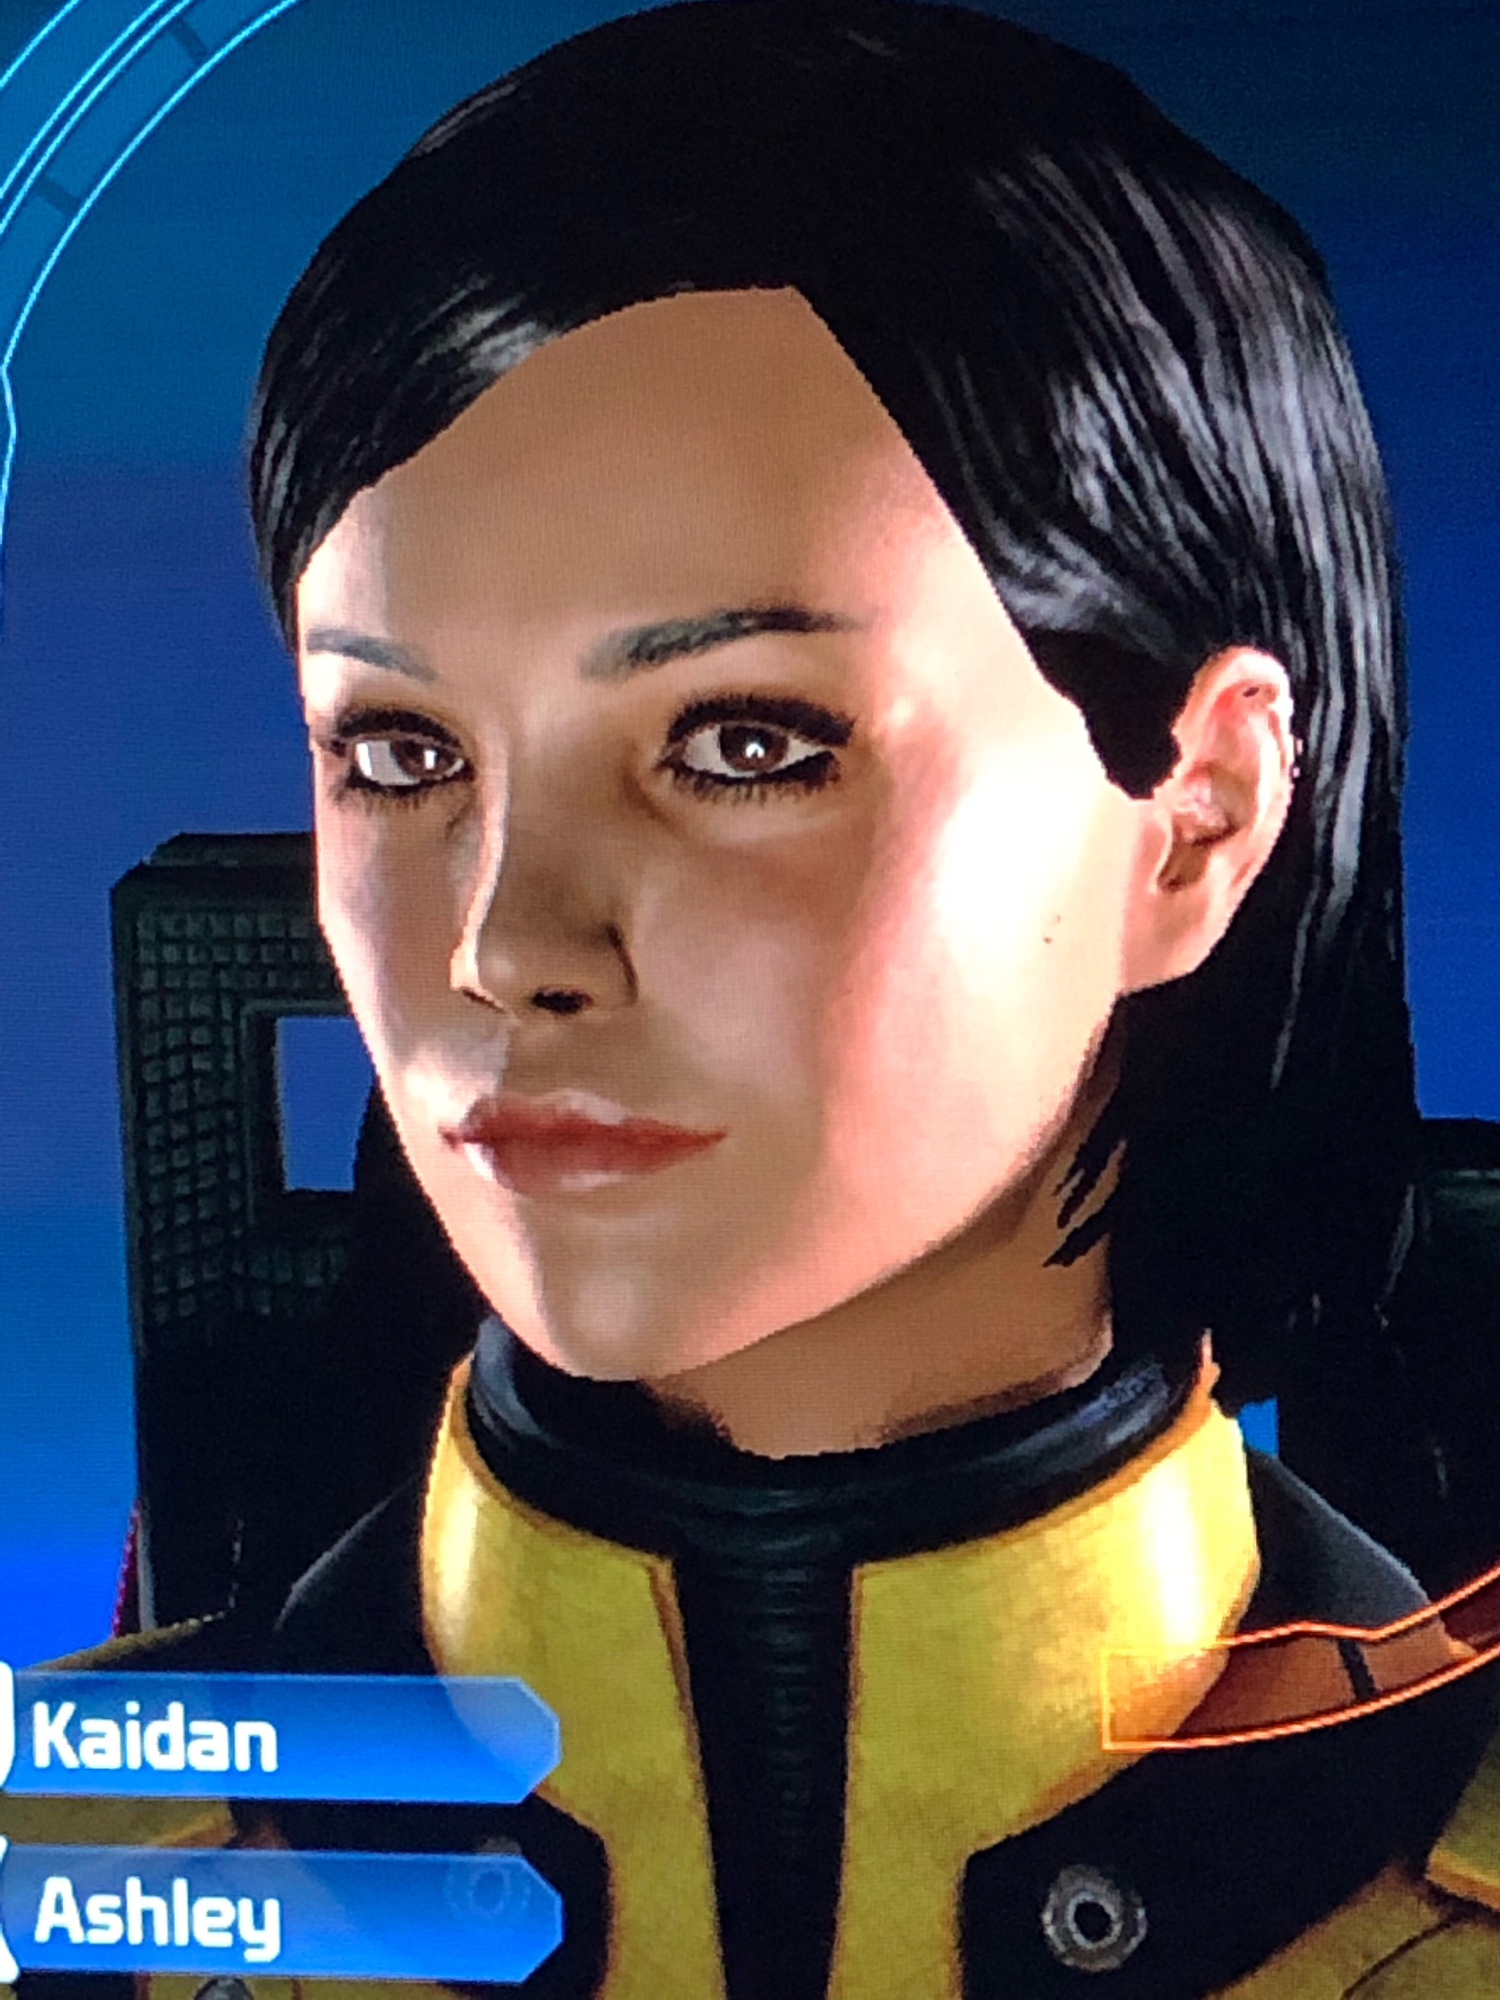 I feel like it's really hard to make a really attractive character in Mass Effect 1.